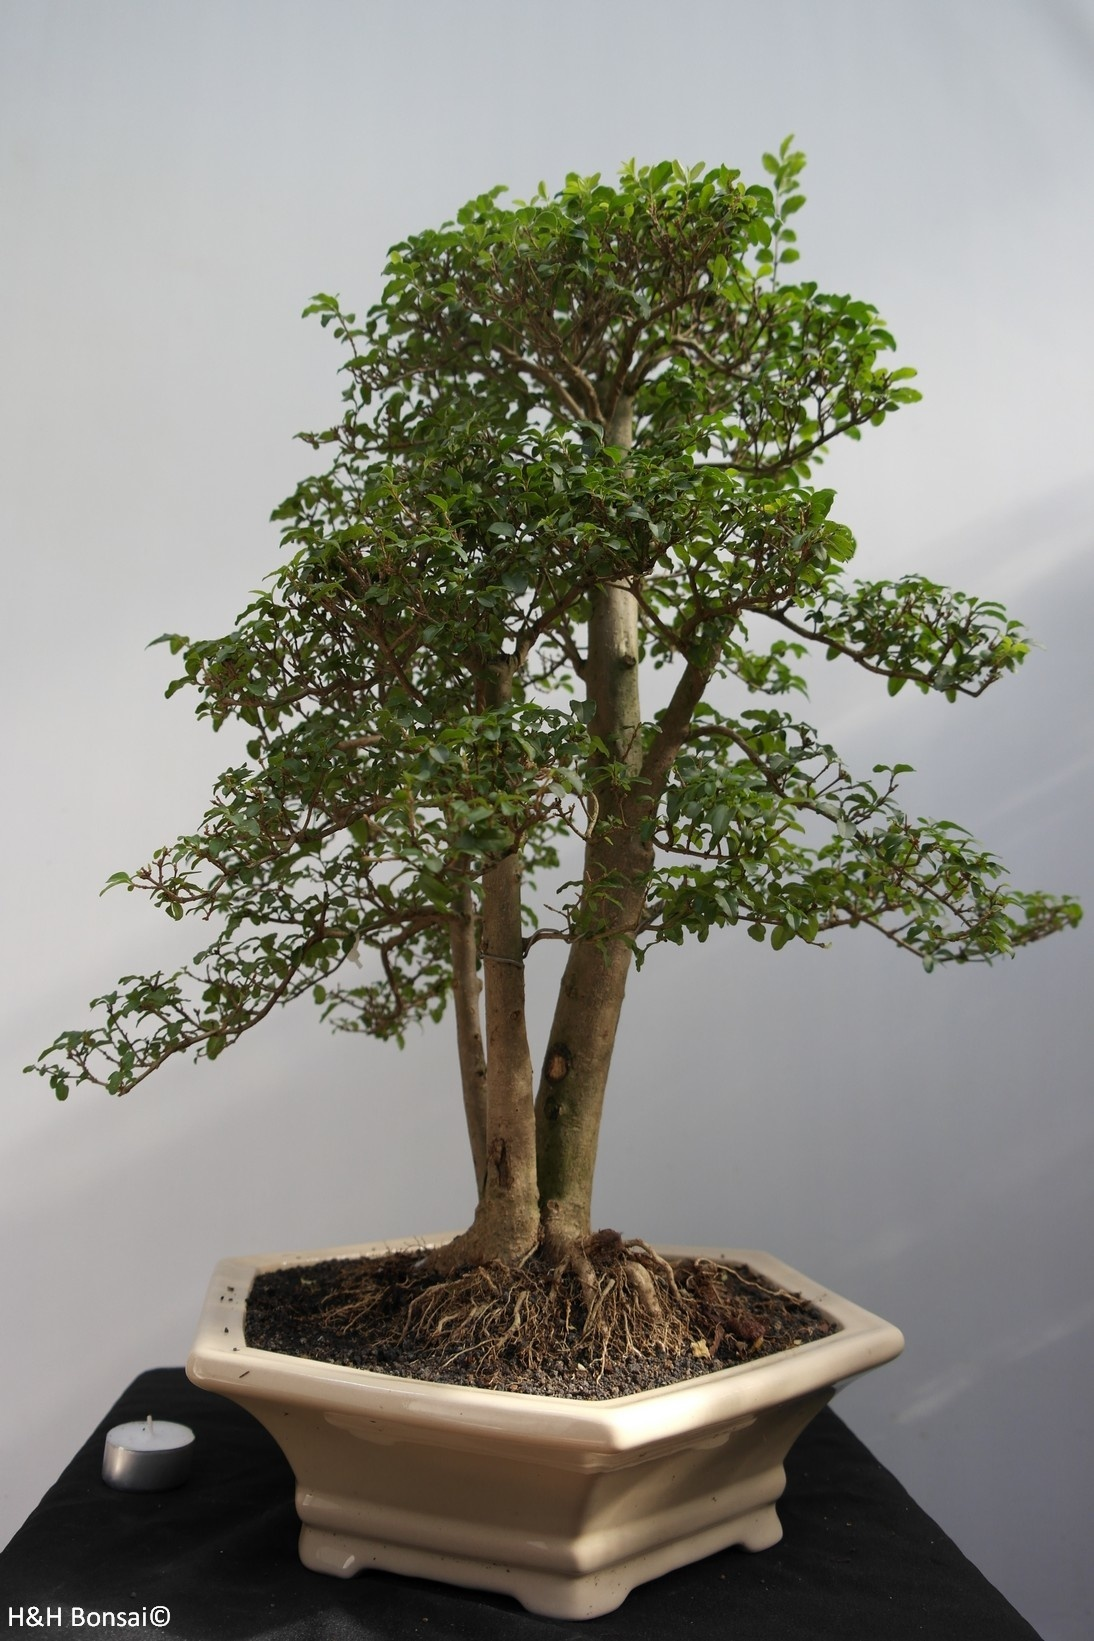 Bonsai Ligustro, Ligustrum sinense, no. 7845